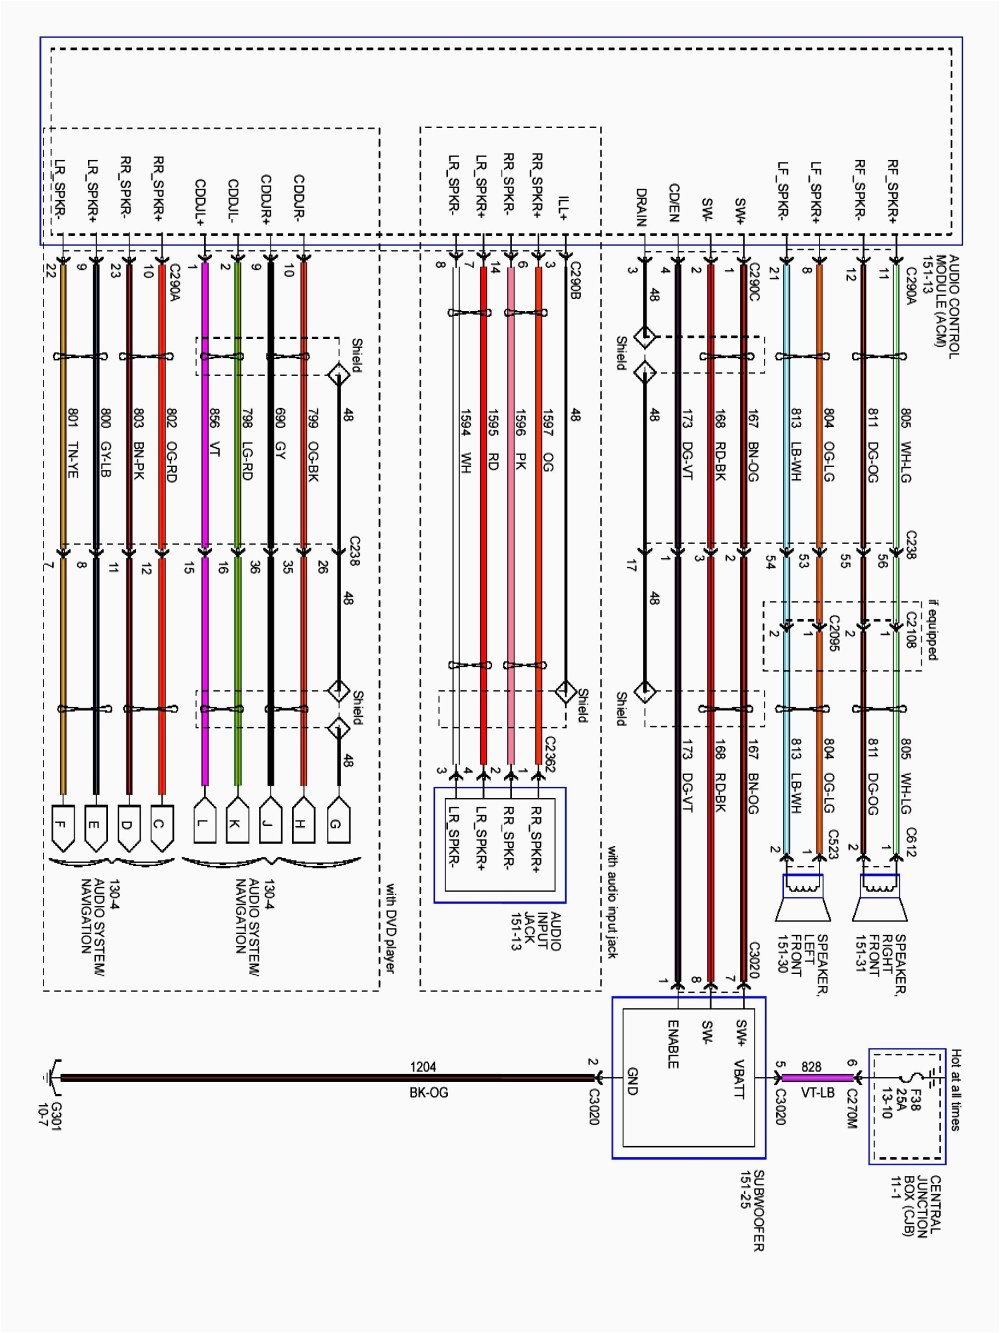 medium resolution of 2008 f150 radio wiring diagram wiring diagram expert wiring diagram for 2008 ford f 150